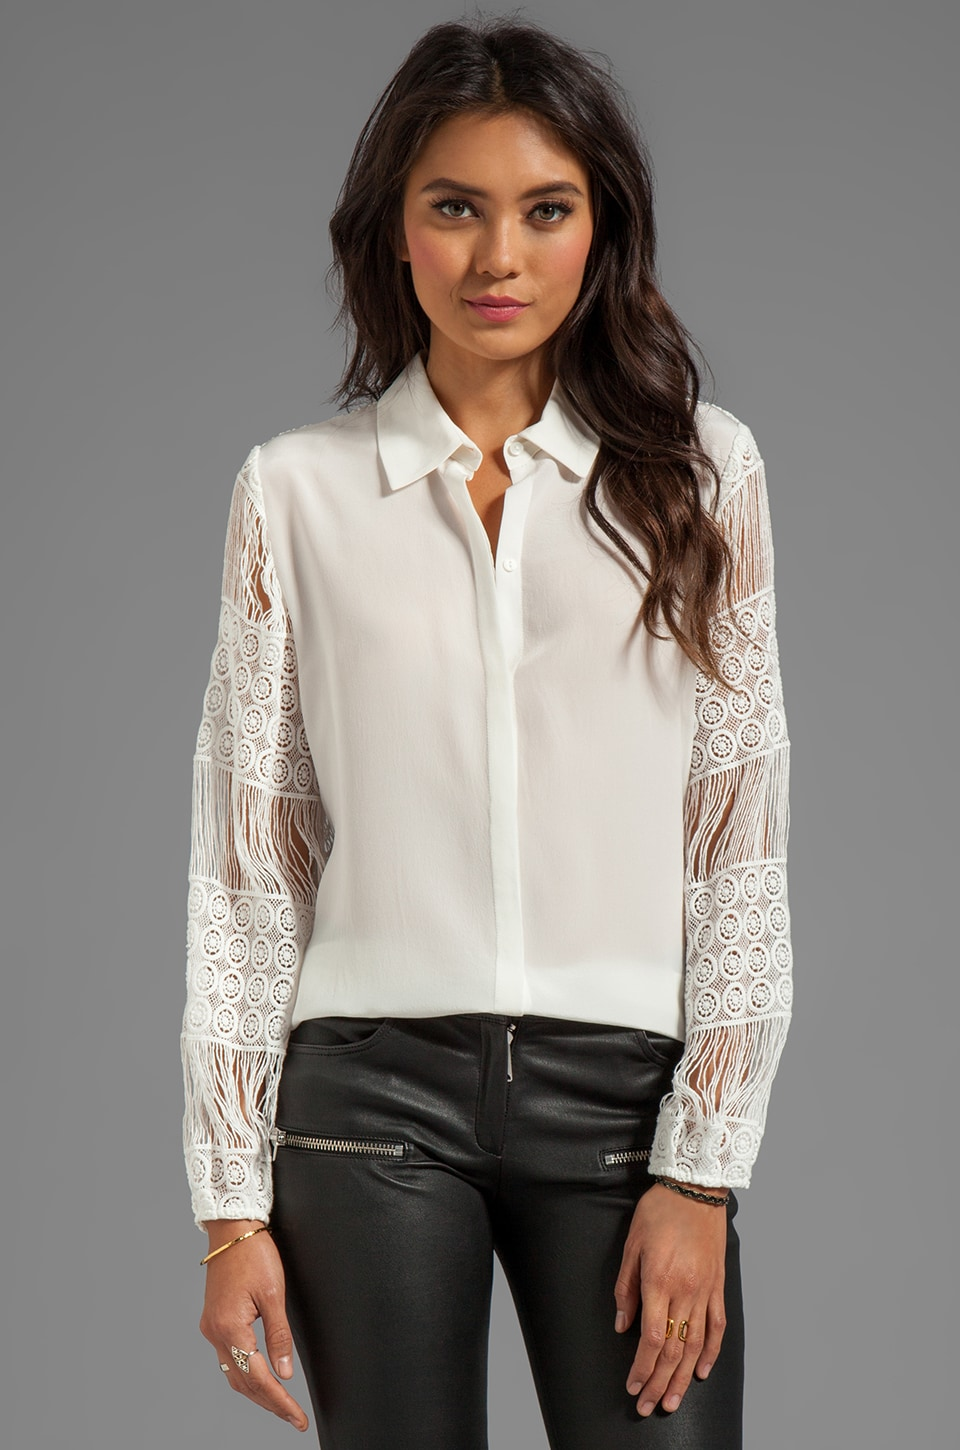 Alexis Aleksandra Button Down Blouse With Crochet Sleeves in White